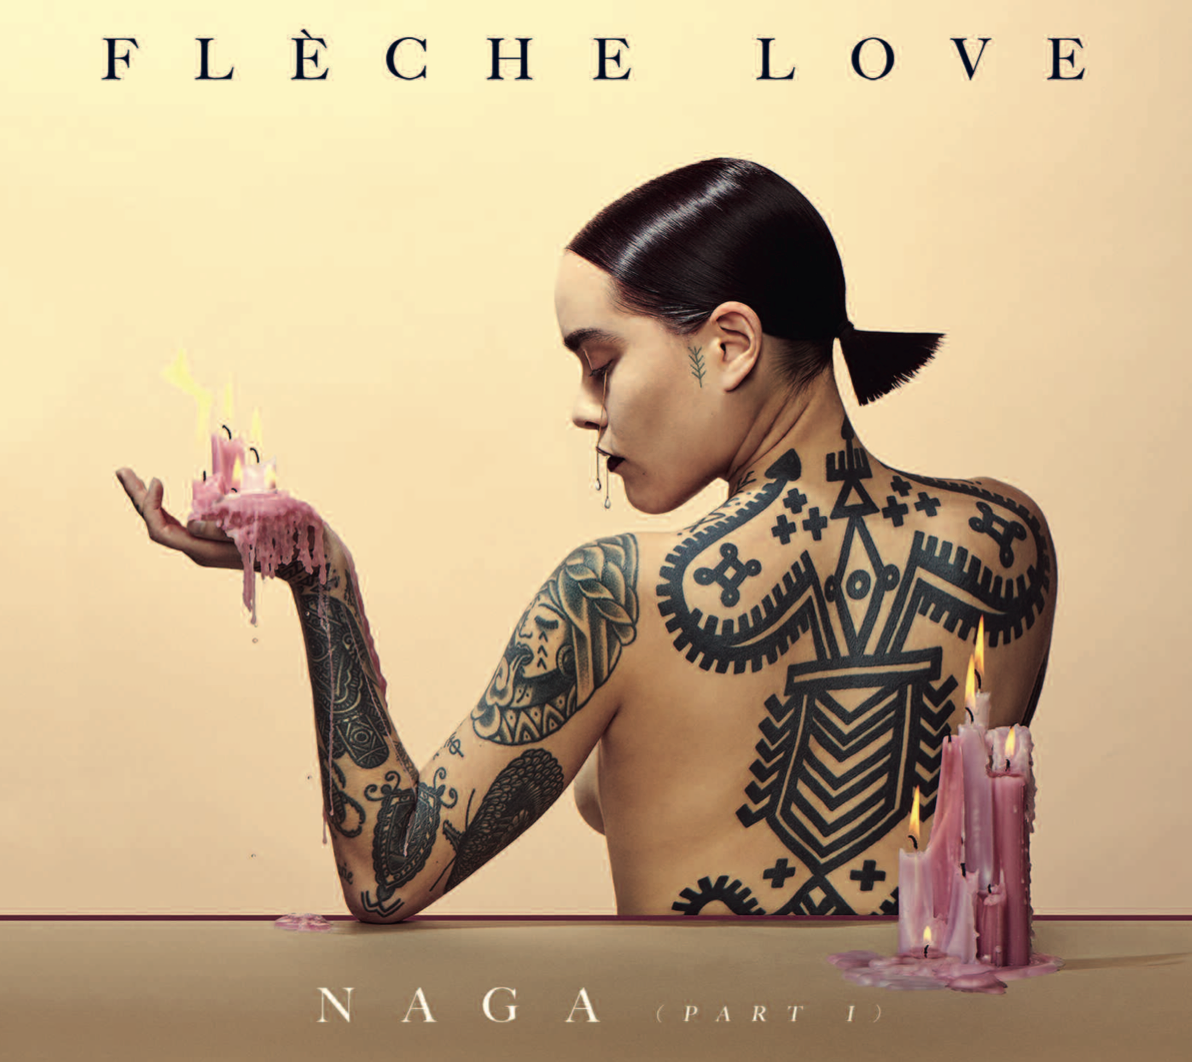 FLECHE LOVE - NAGA (part I)